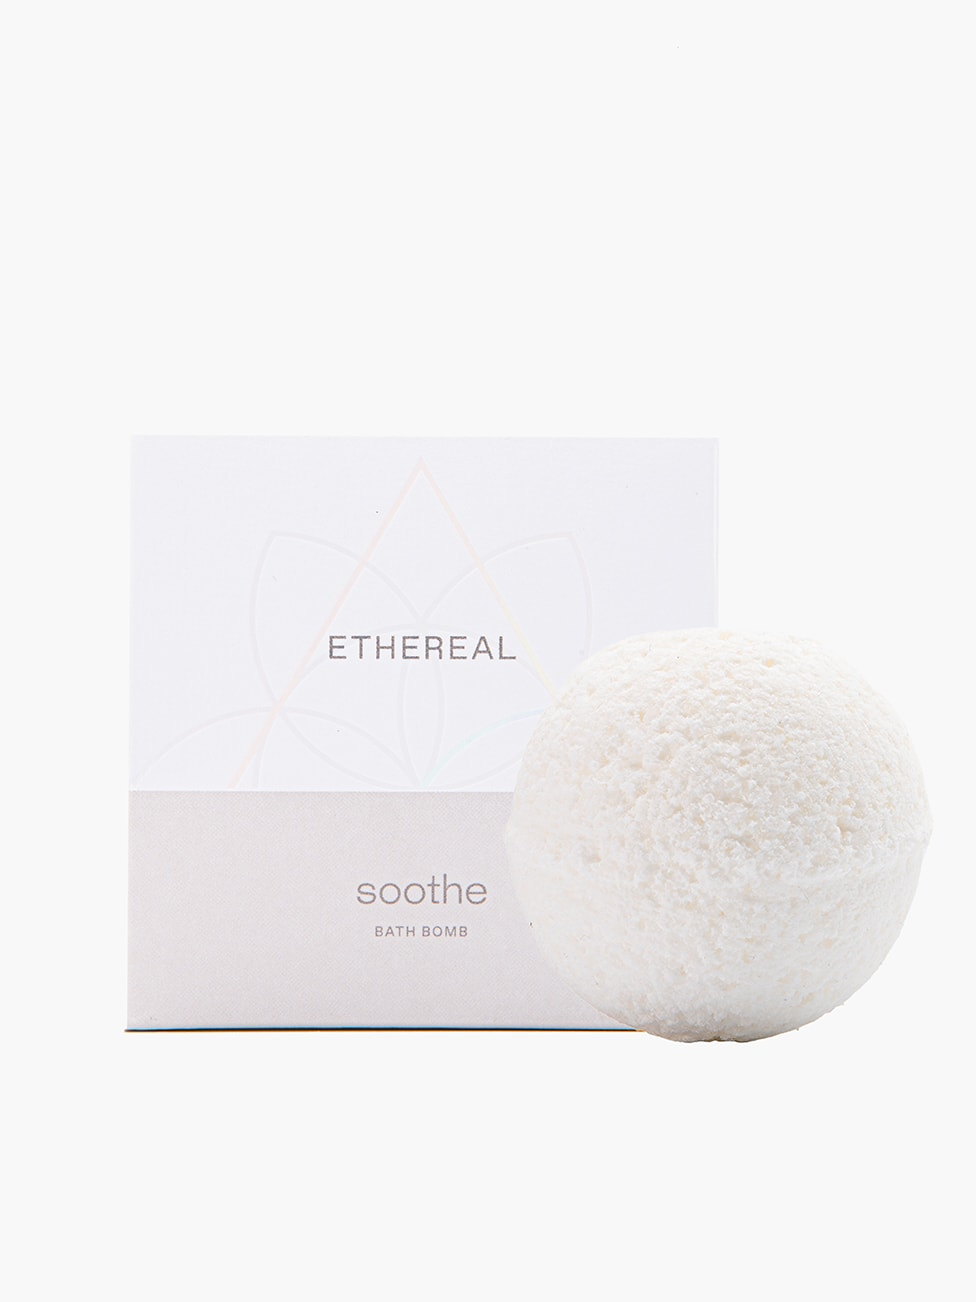 Soothe_Bathbomb_Package_Ethereal_Dermocosmetics_Skincare_Handmade_Greek_Products_1